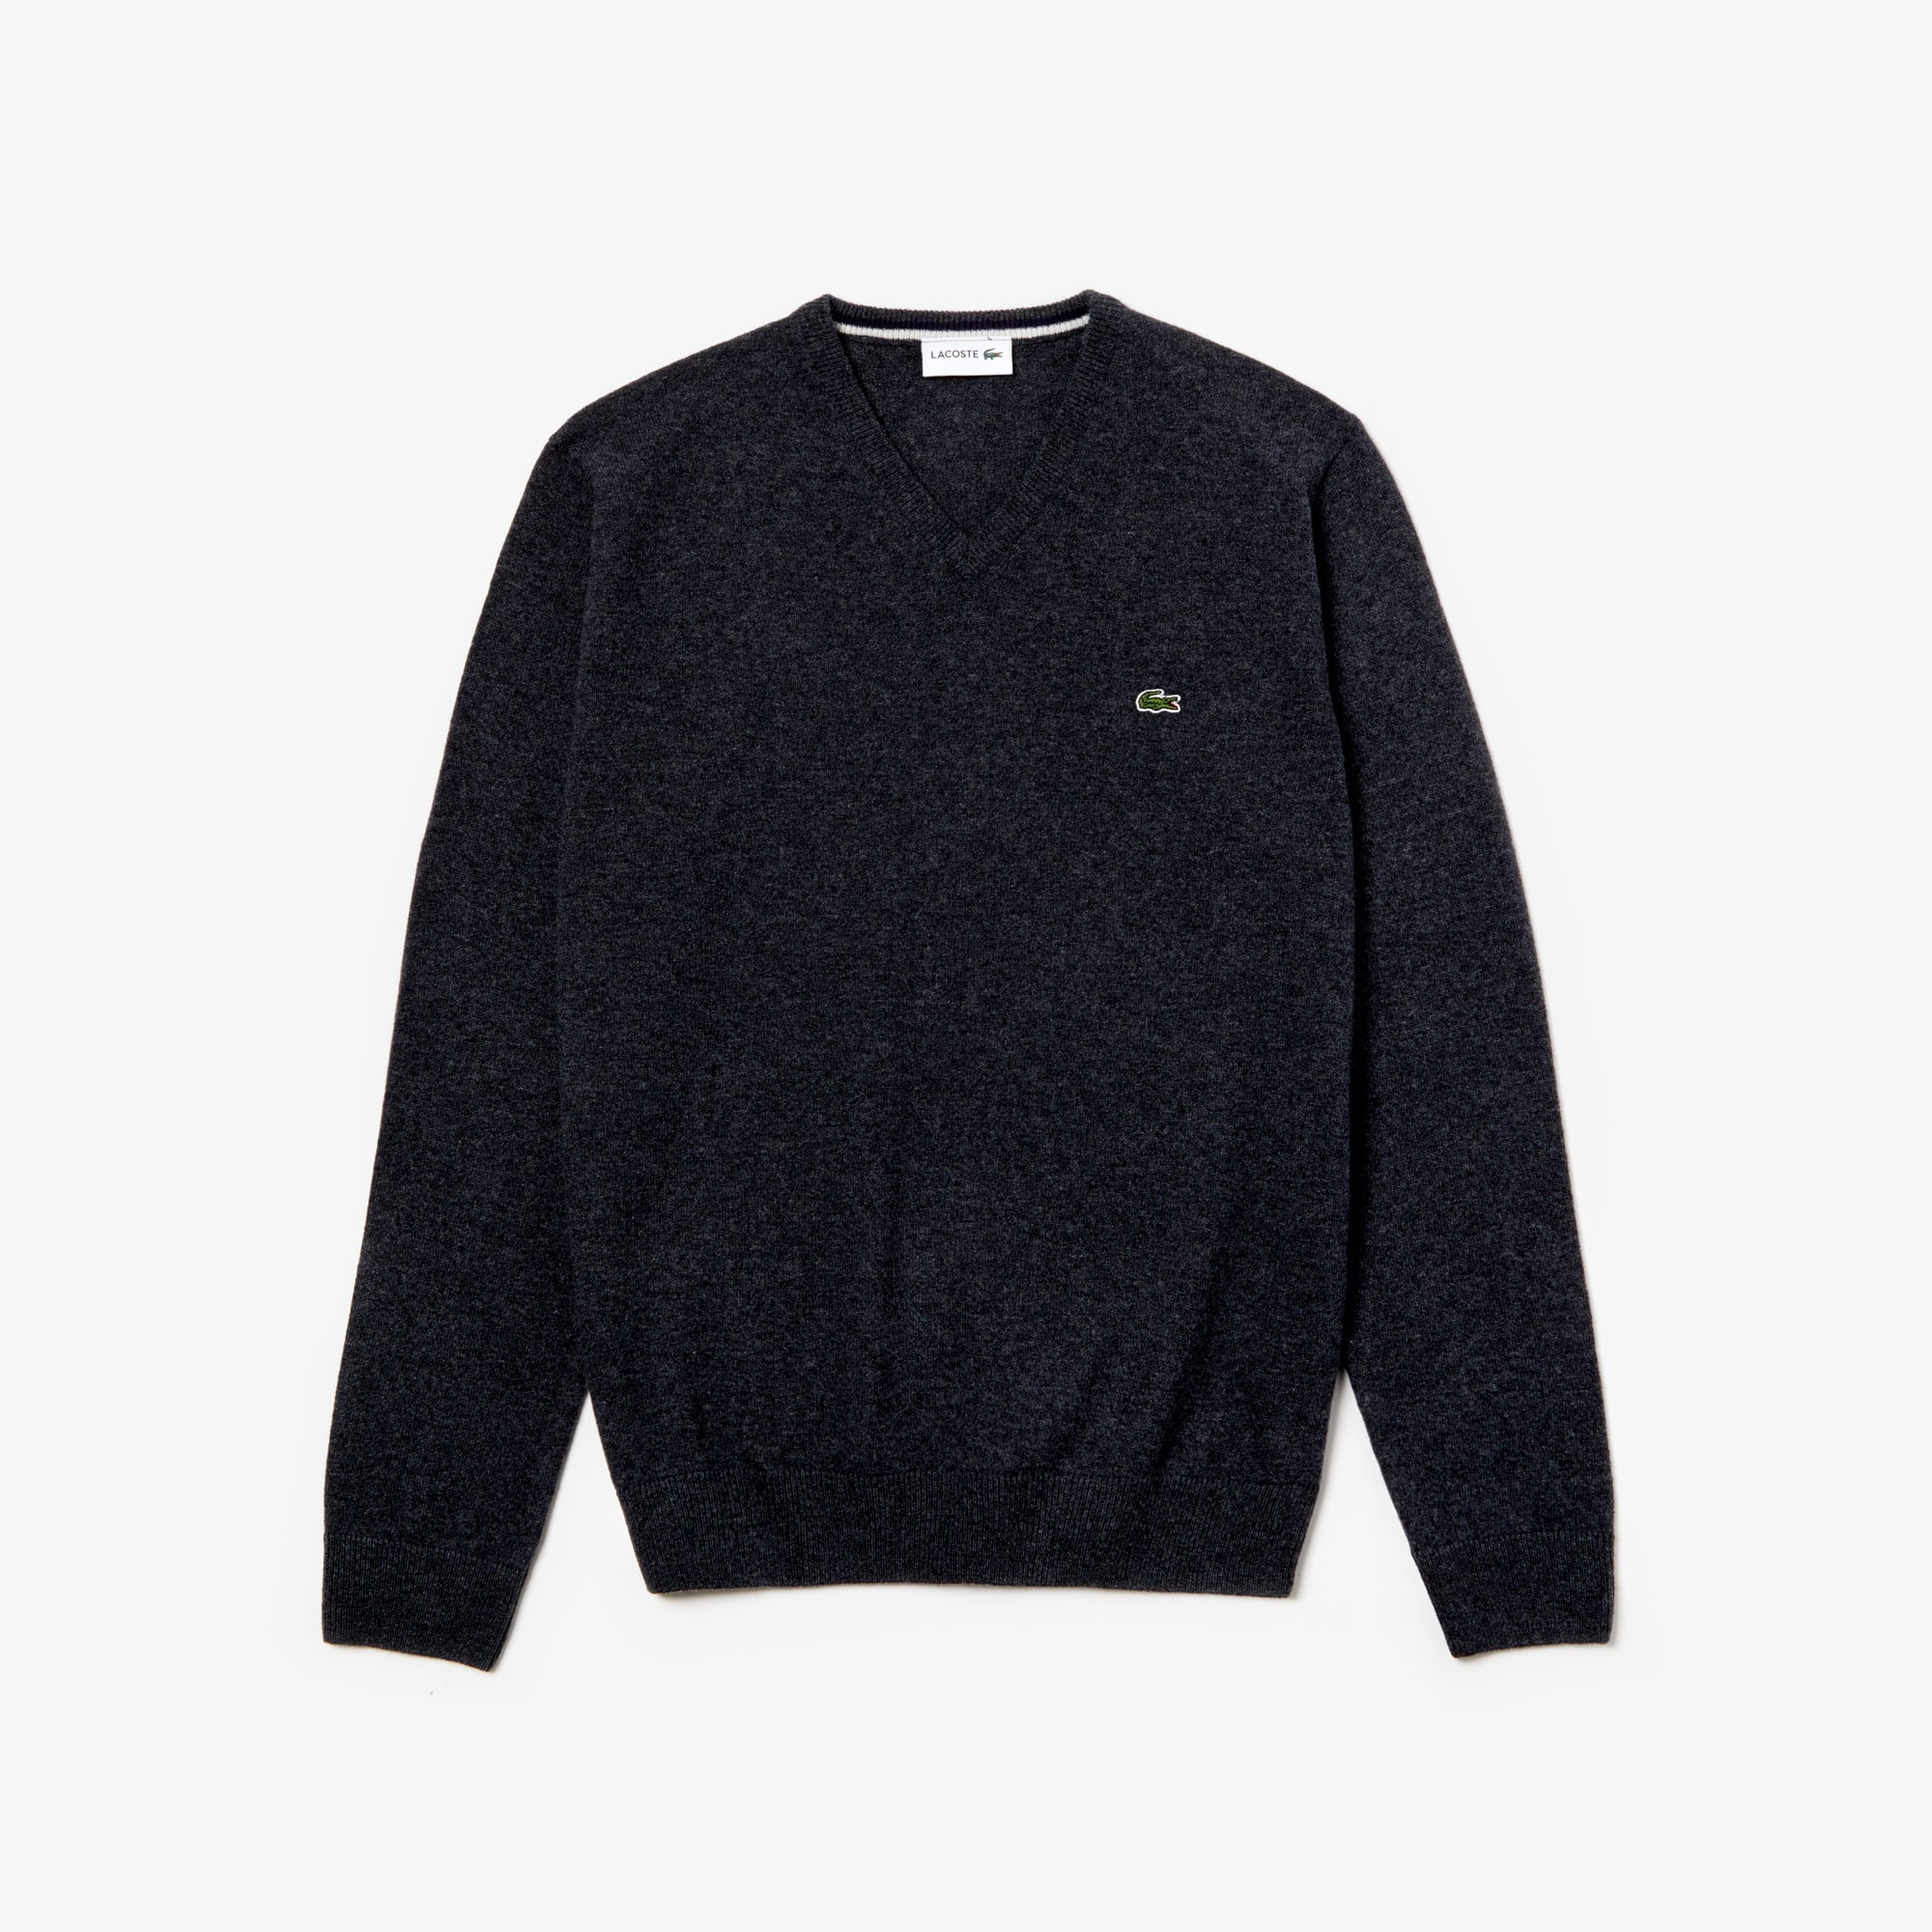 21f5d99314e42a Jumpers - Knitwear | Men's Fashion | LACOSTE